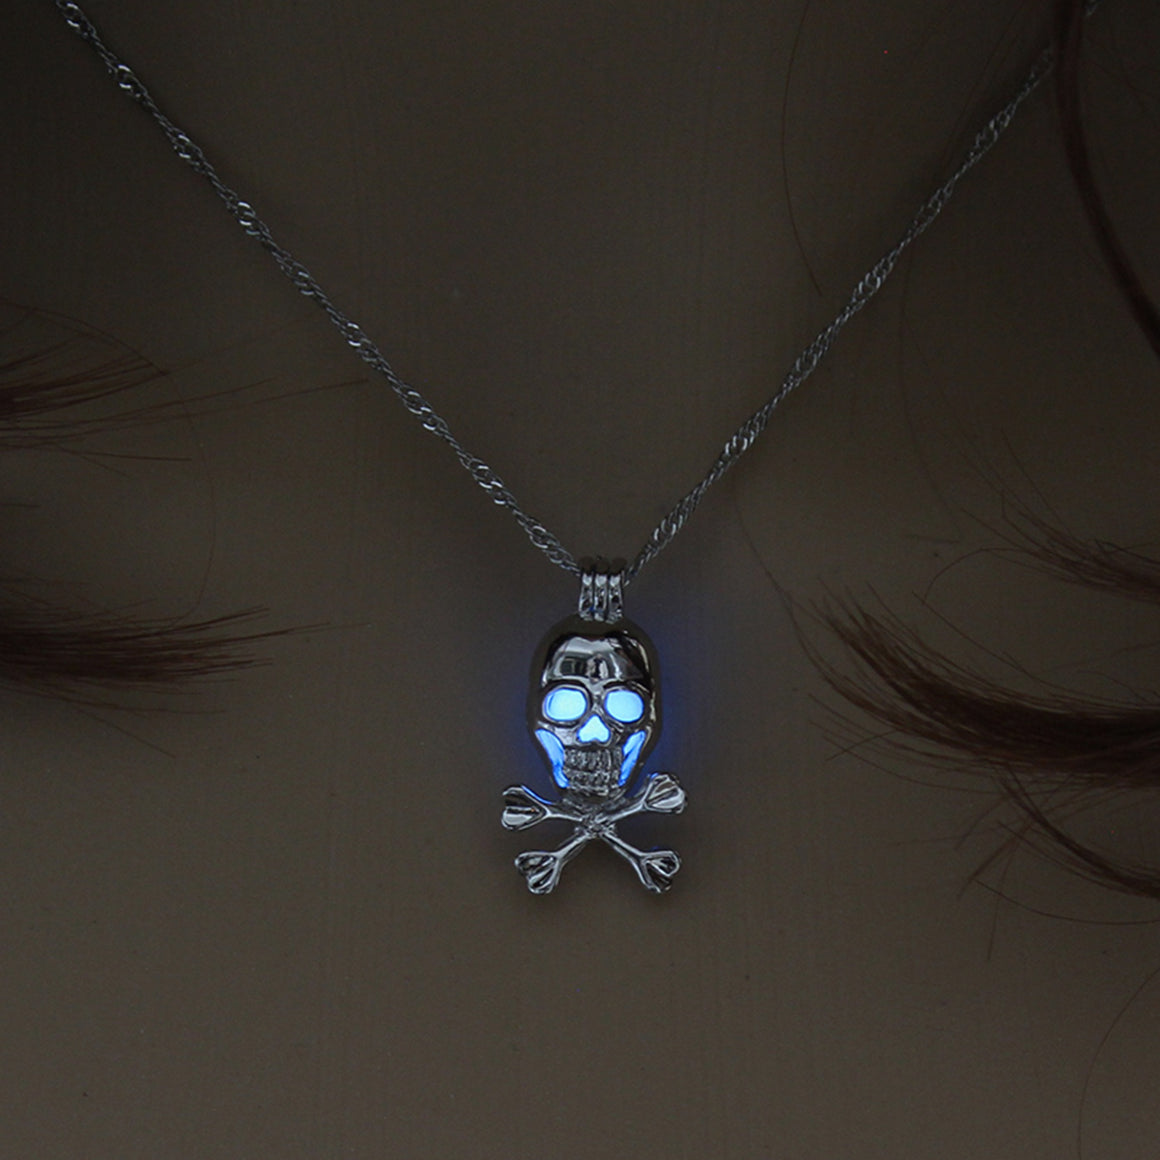 Glow In The Dark Skull Pendant Necklace - Fantasy Jewelry Online